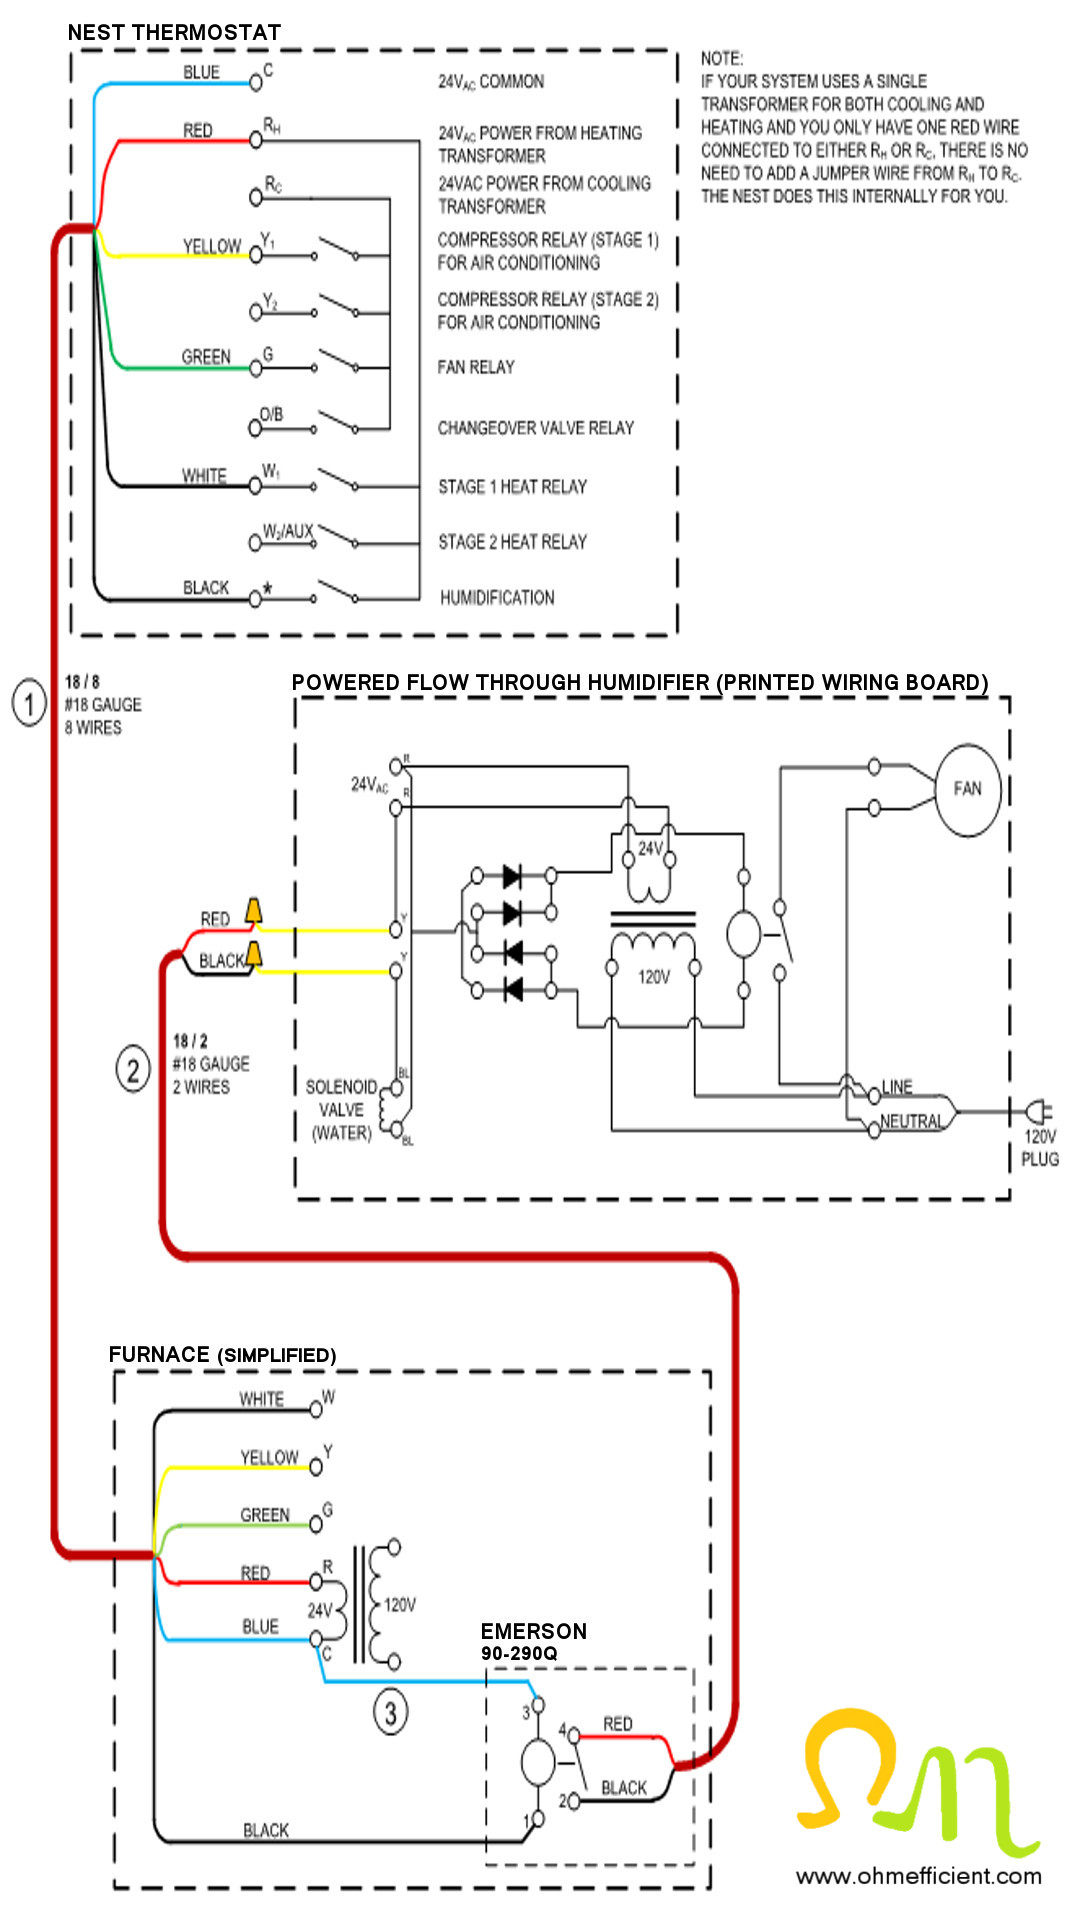 How To Connect & Setup A Nest Thermostat To Function As A Humidistat - Nest Wiring Diagram Variable Speed